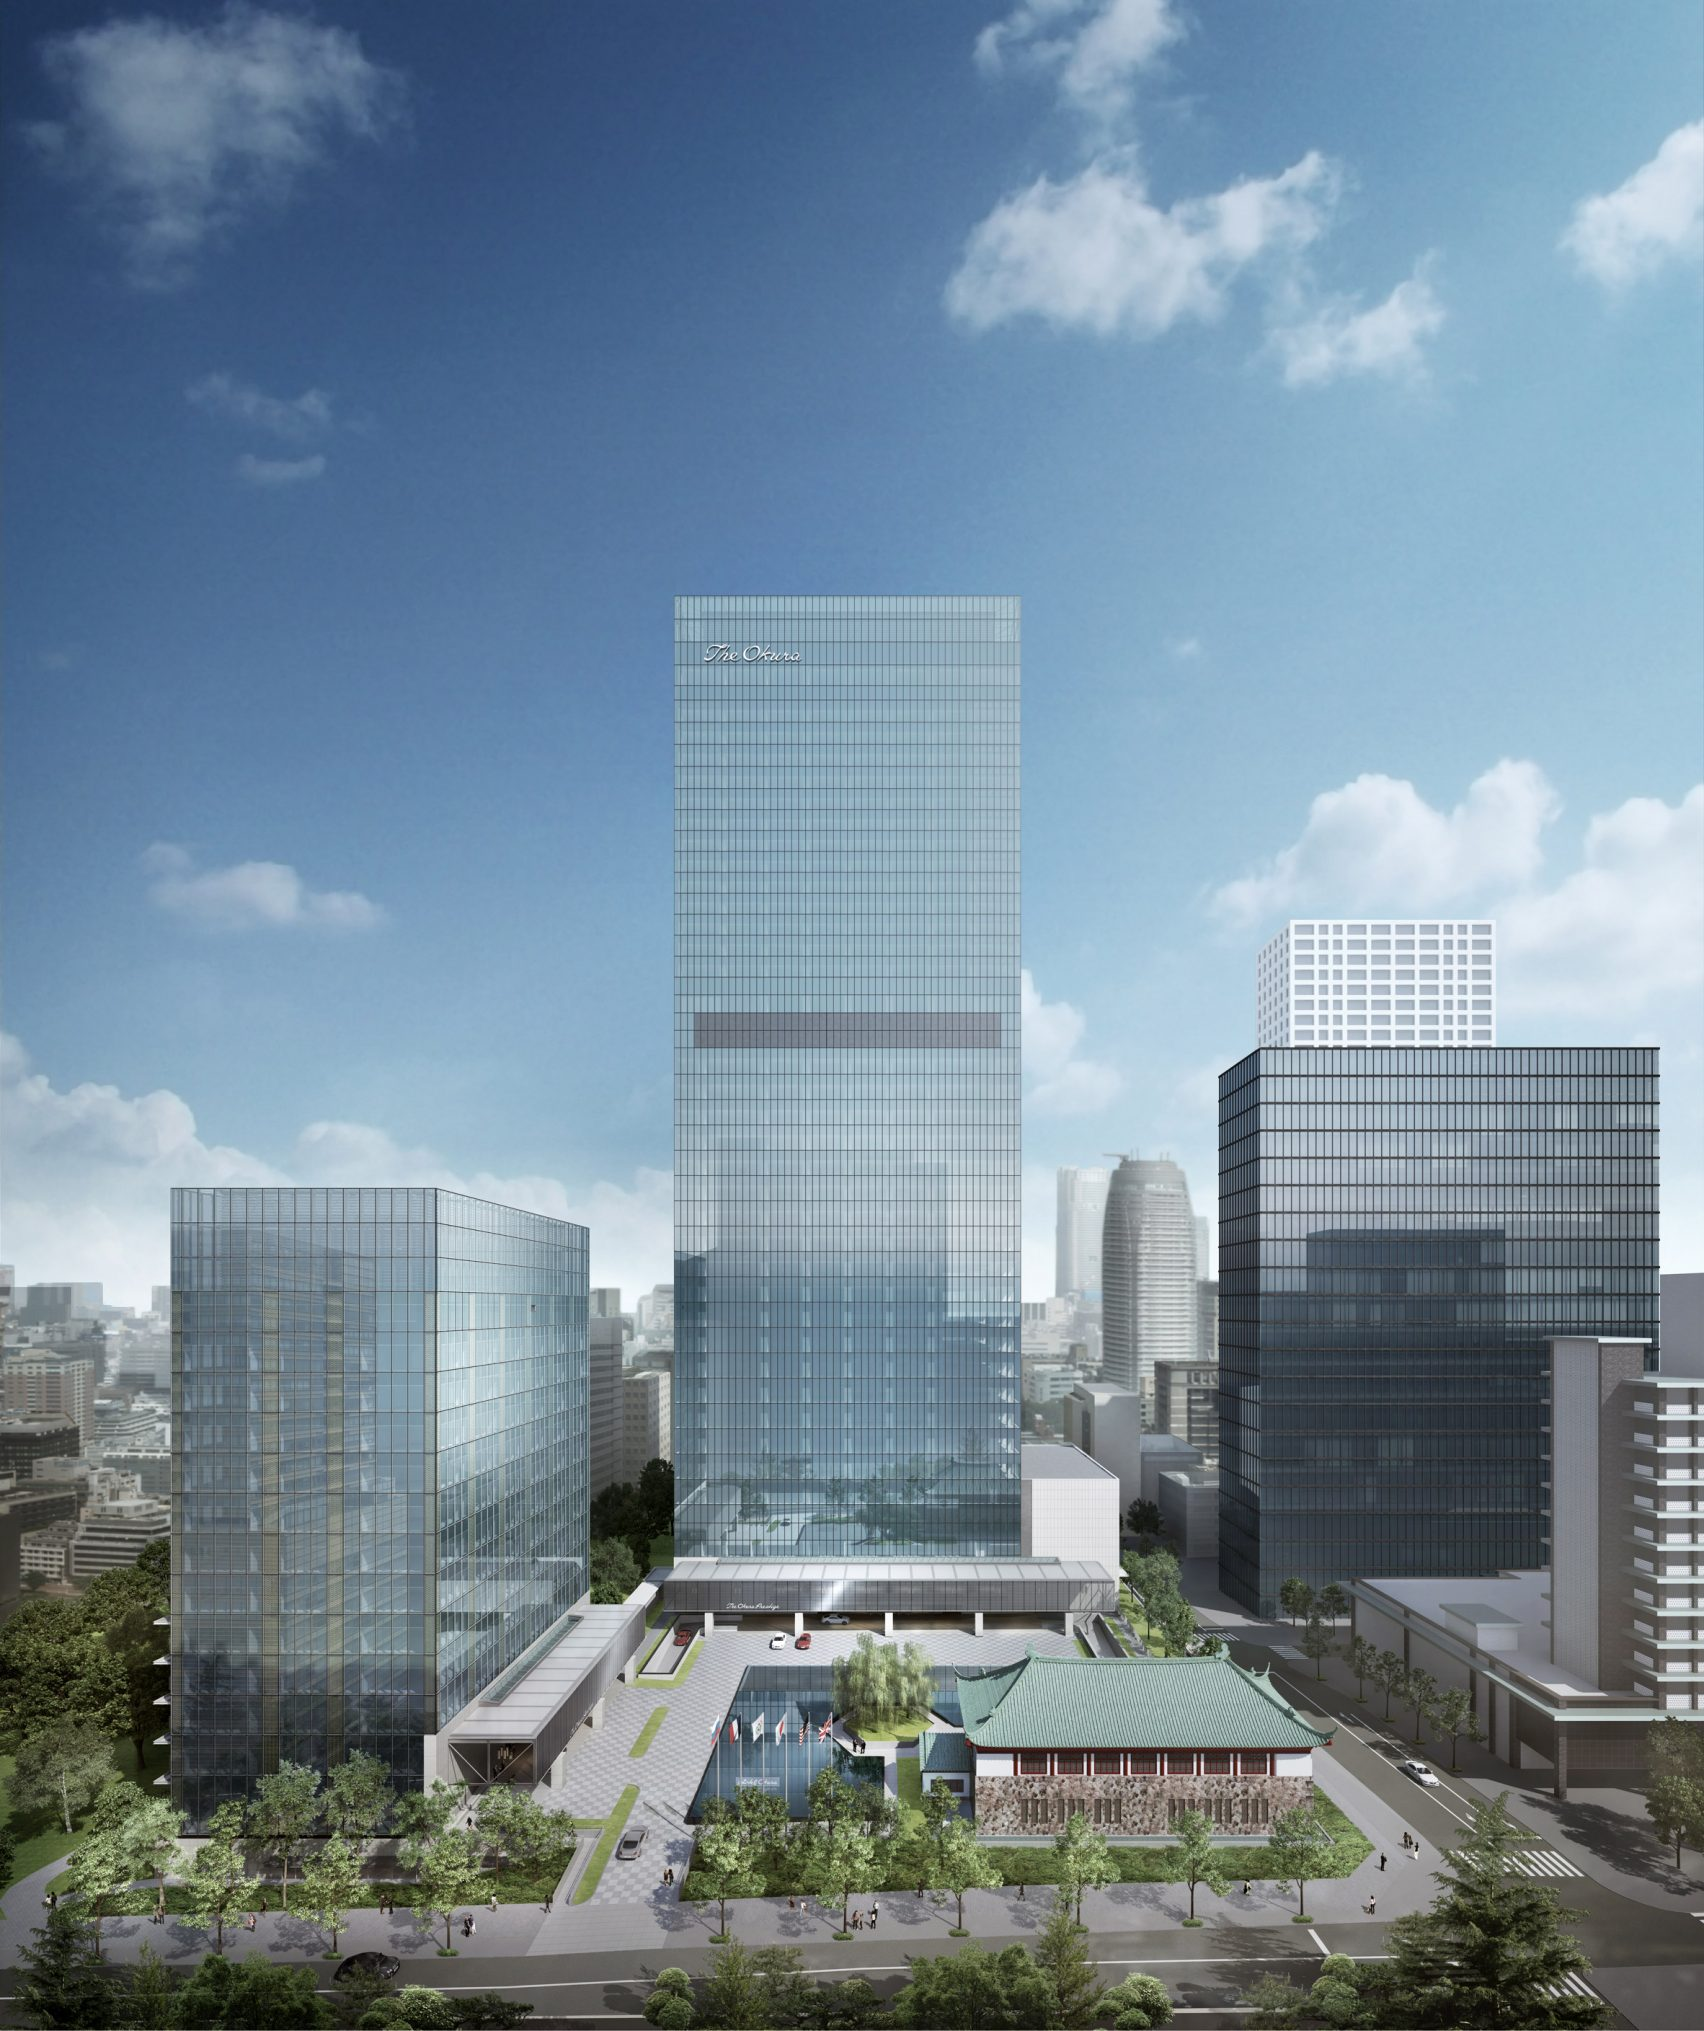 Tokyo's iconic Hotel Okura to reopen in 2019 after renovations